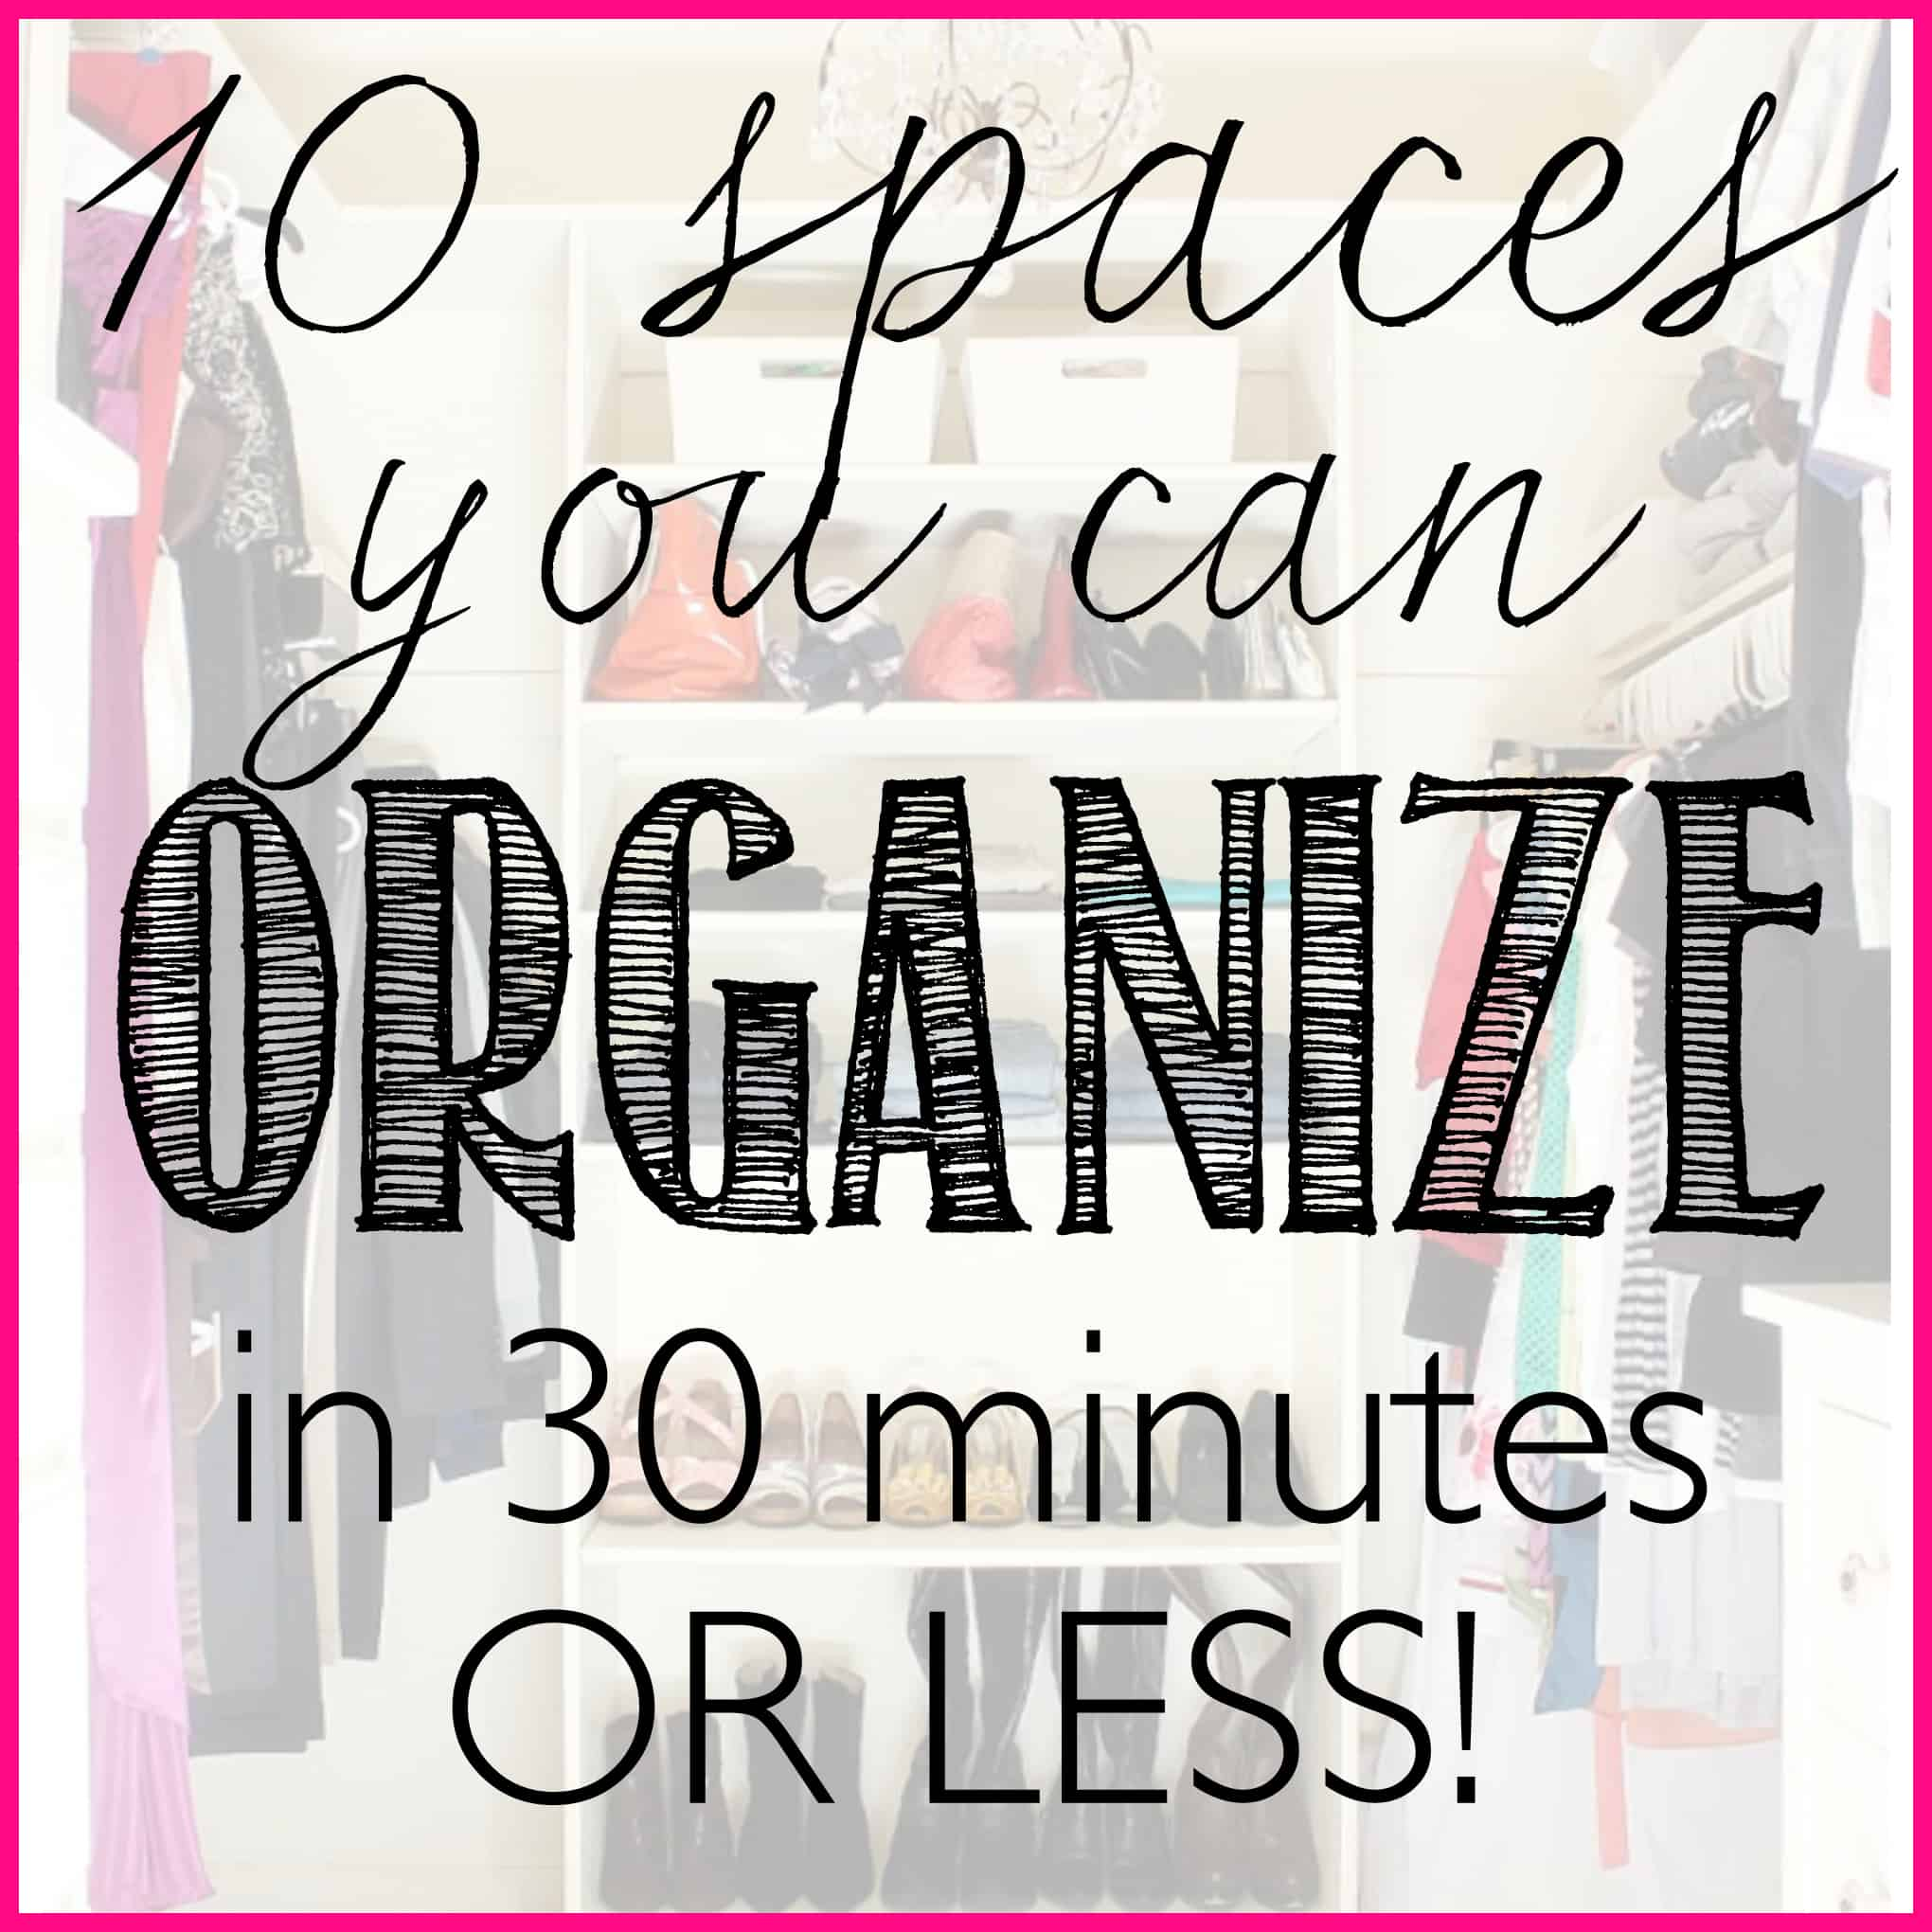 10 spaces you can organize in 30 minutes or less - a series that takes your limited time into consideration, and gives you the tools to organize your home   Ask Anna